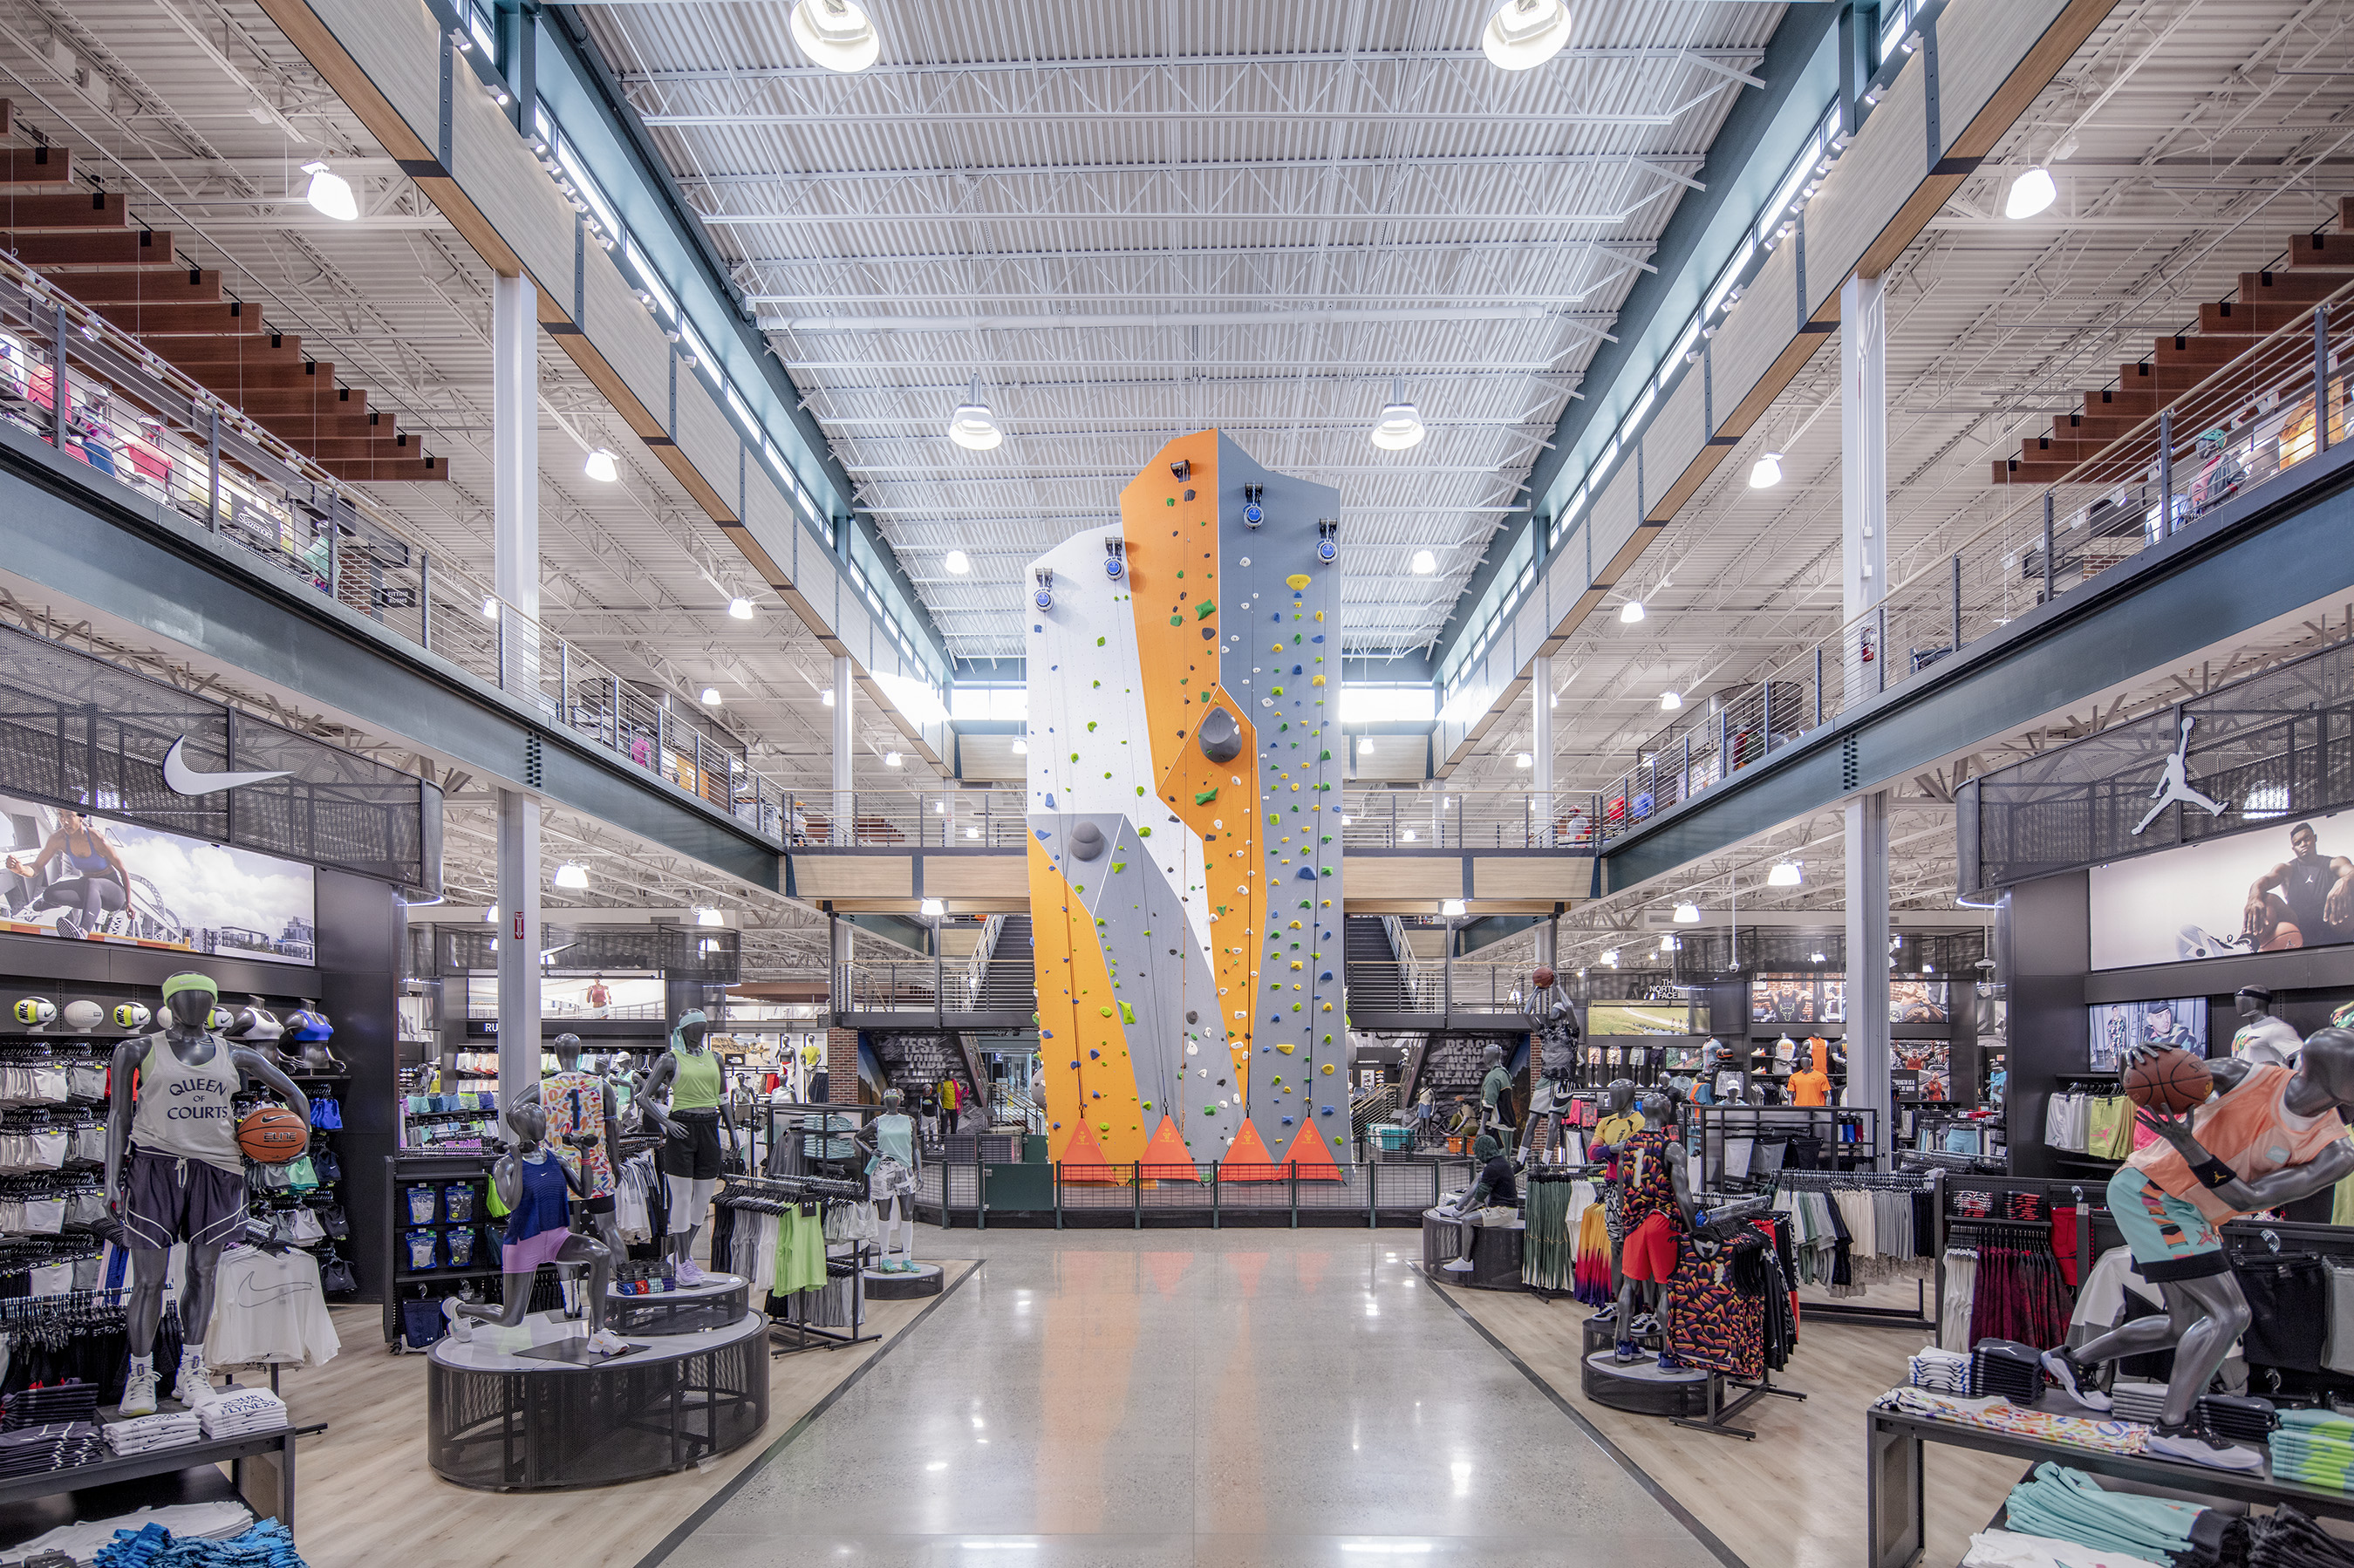 DICK'S Sporting Goods Announces Grand Opening of Seven Stores - Including its Second 'DICK'S House of Sport' - in June